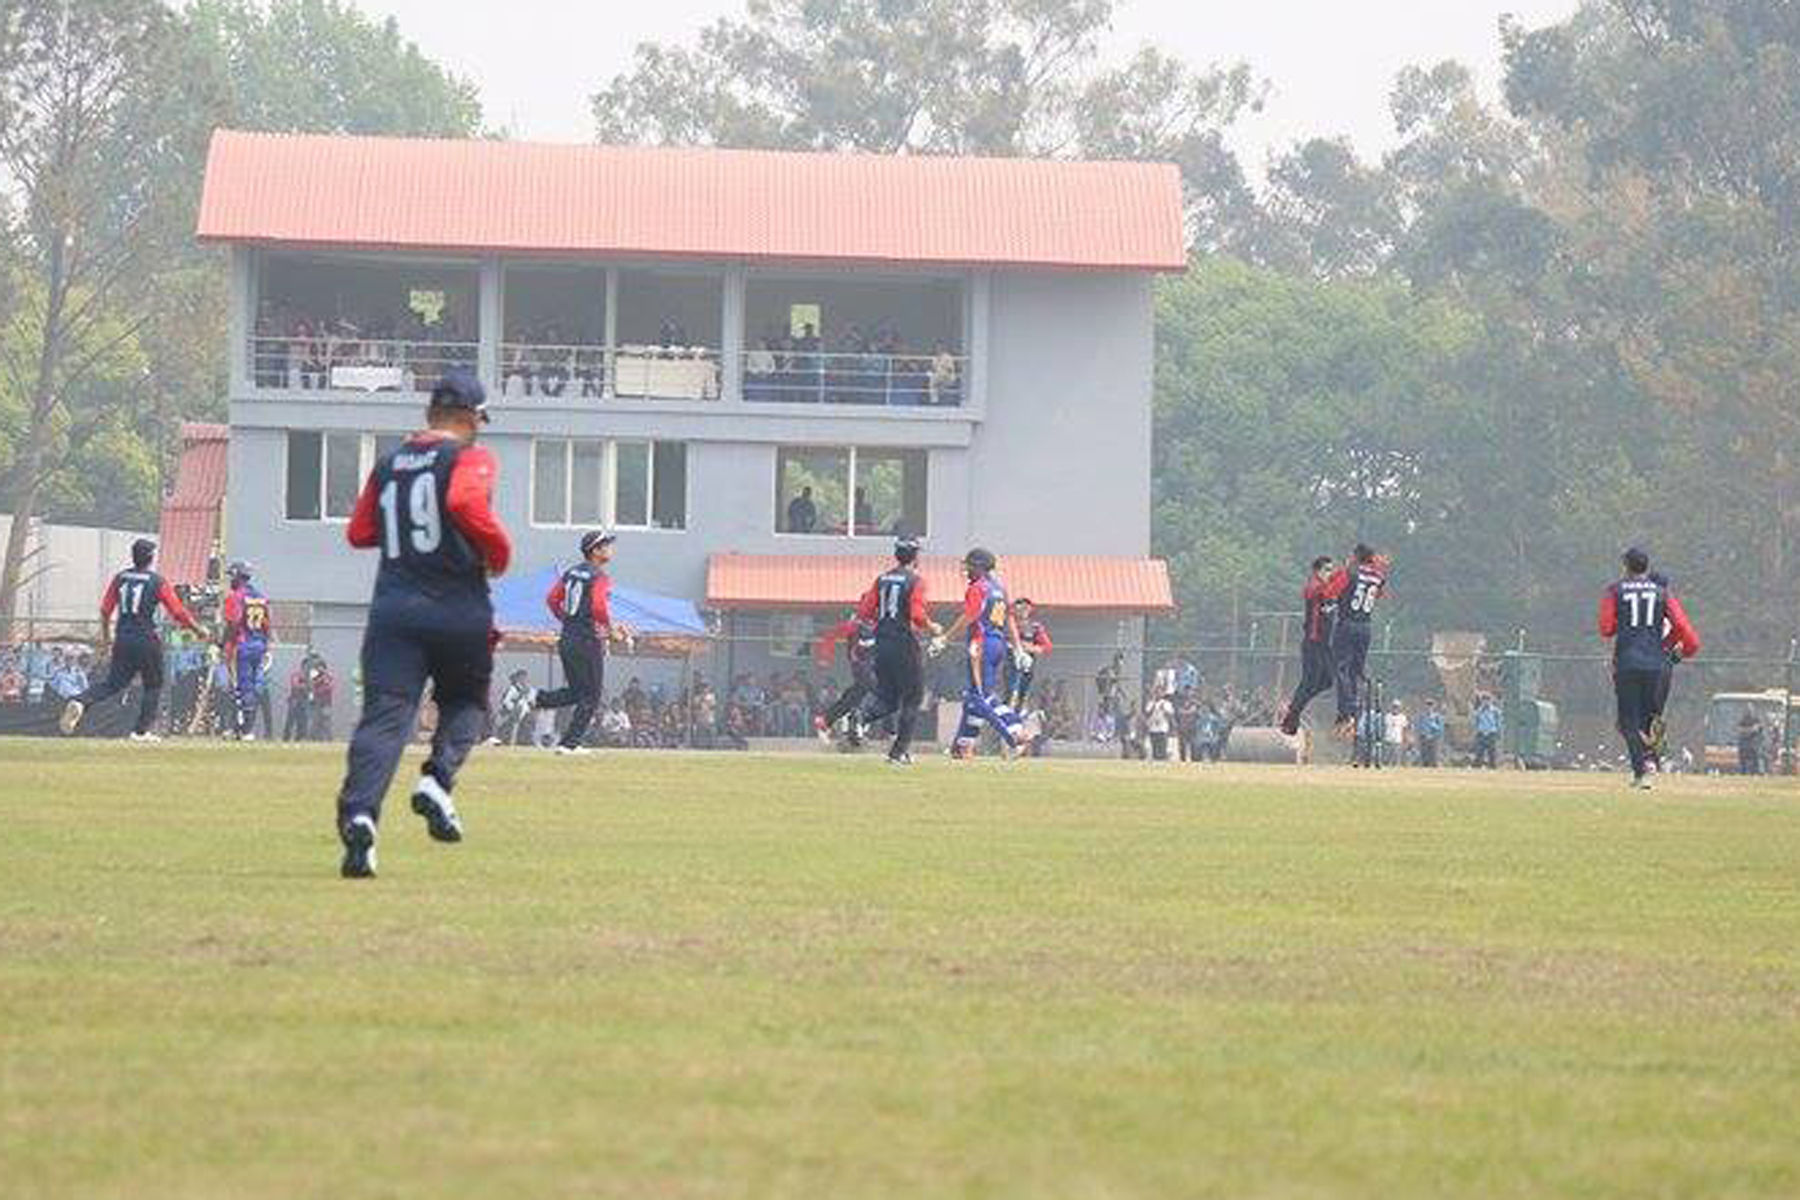 Nepal players celebrate after taking a wicket against Namibia during the match of the ICC World Cricket League Championship round-three matches held at the Tribhuvan University Cricket Stadium in Kirtipur on Saturday, April 16, 2016. Photo: RSS